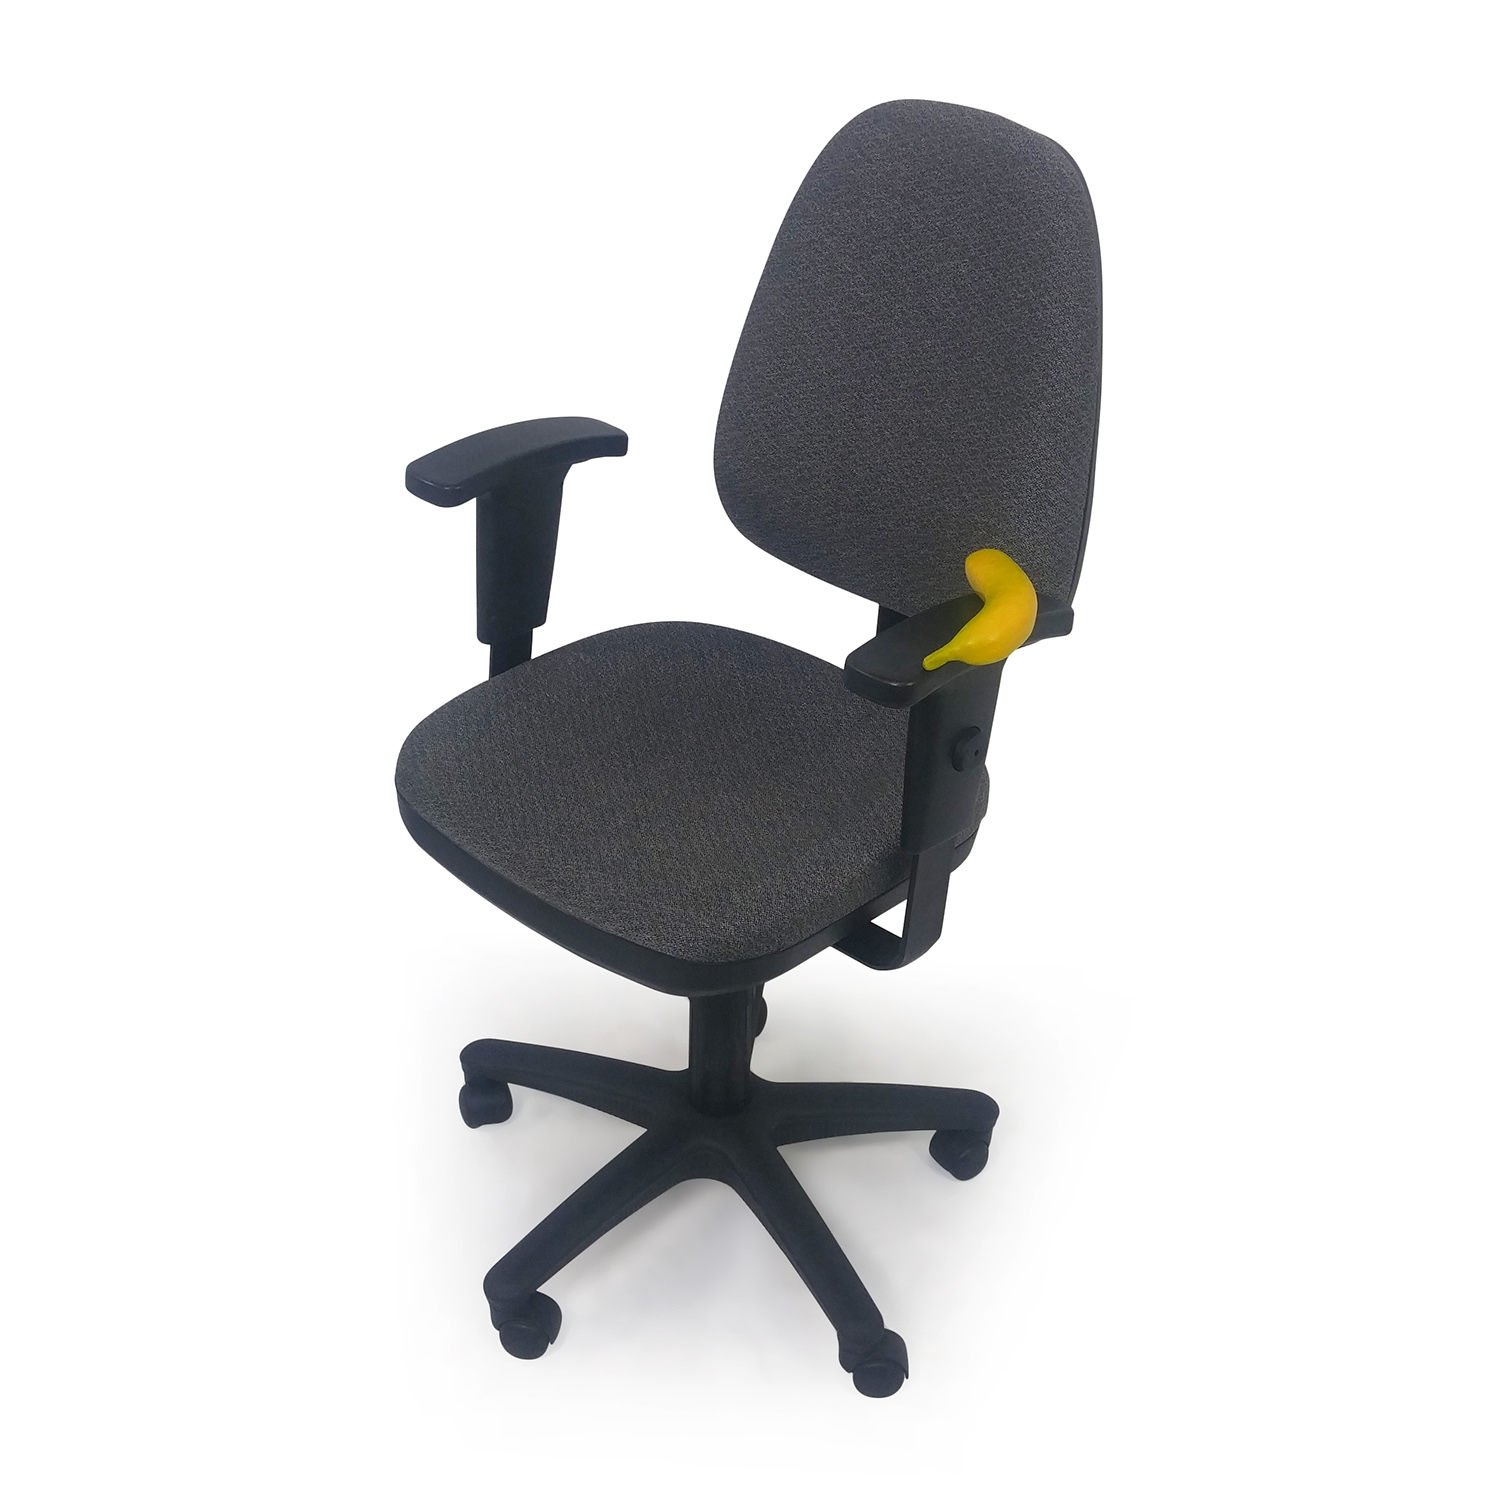 88 OFF  Ergonomic Office Chair  Chairs